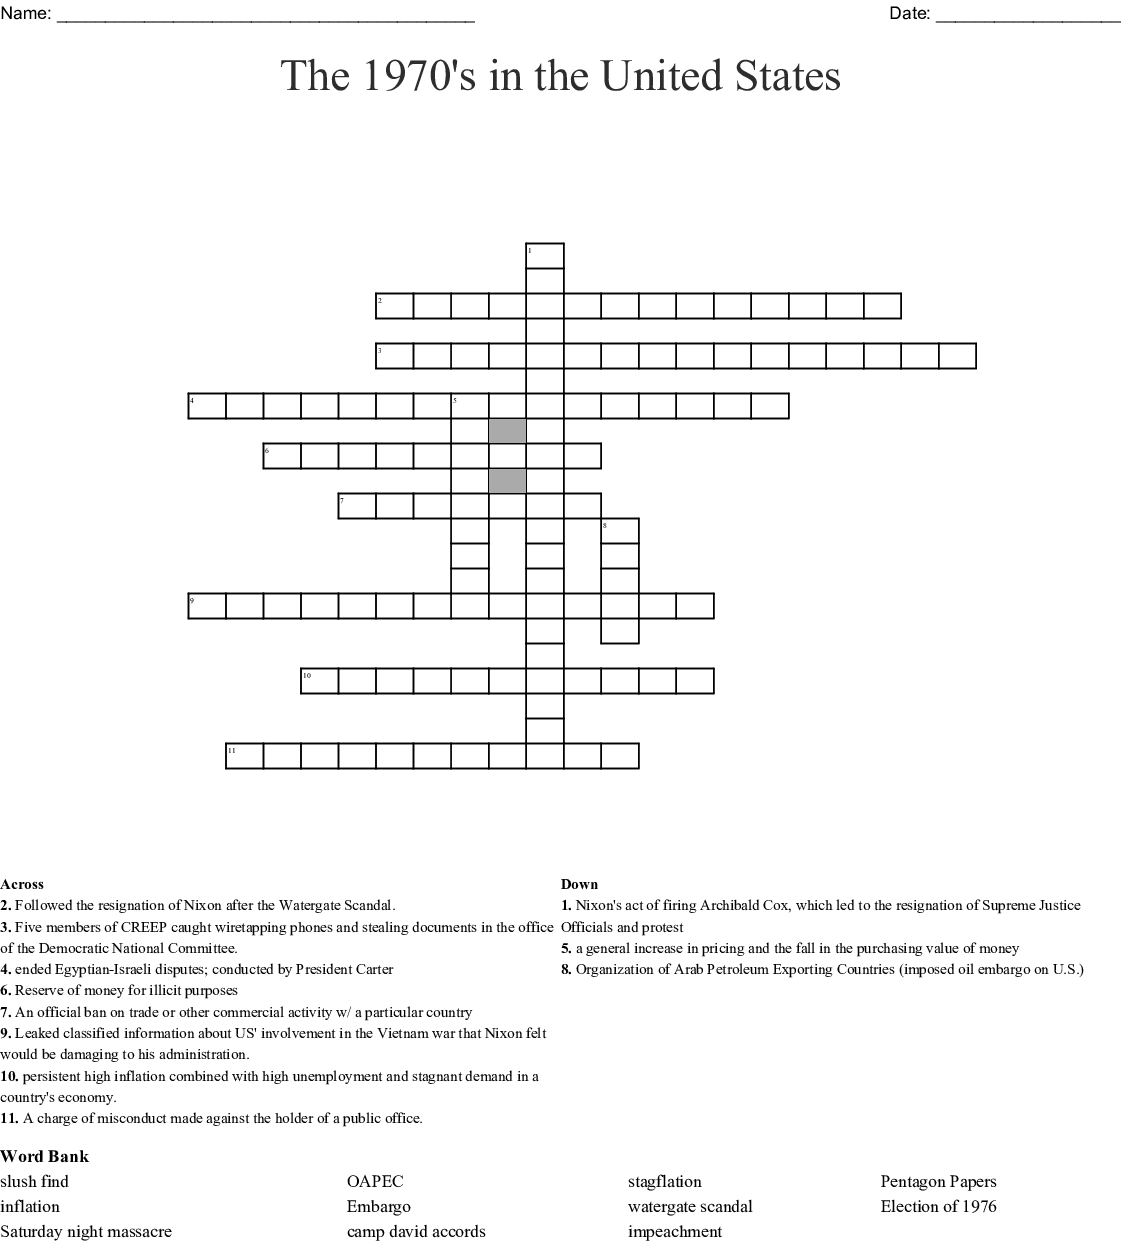 The Wars of Watergate Word Search - WordMint